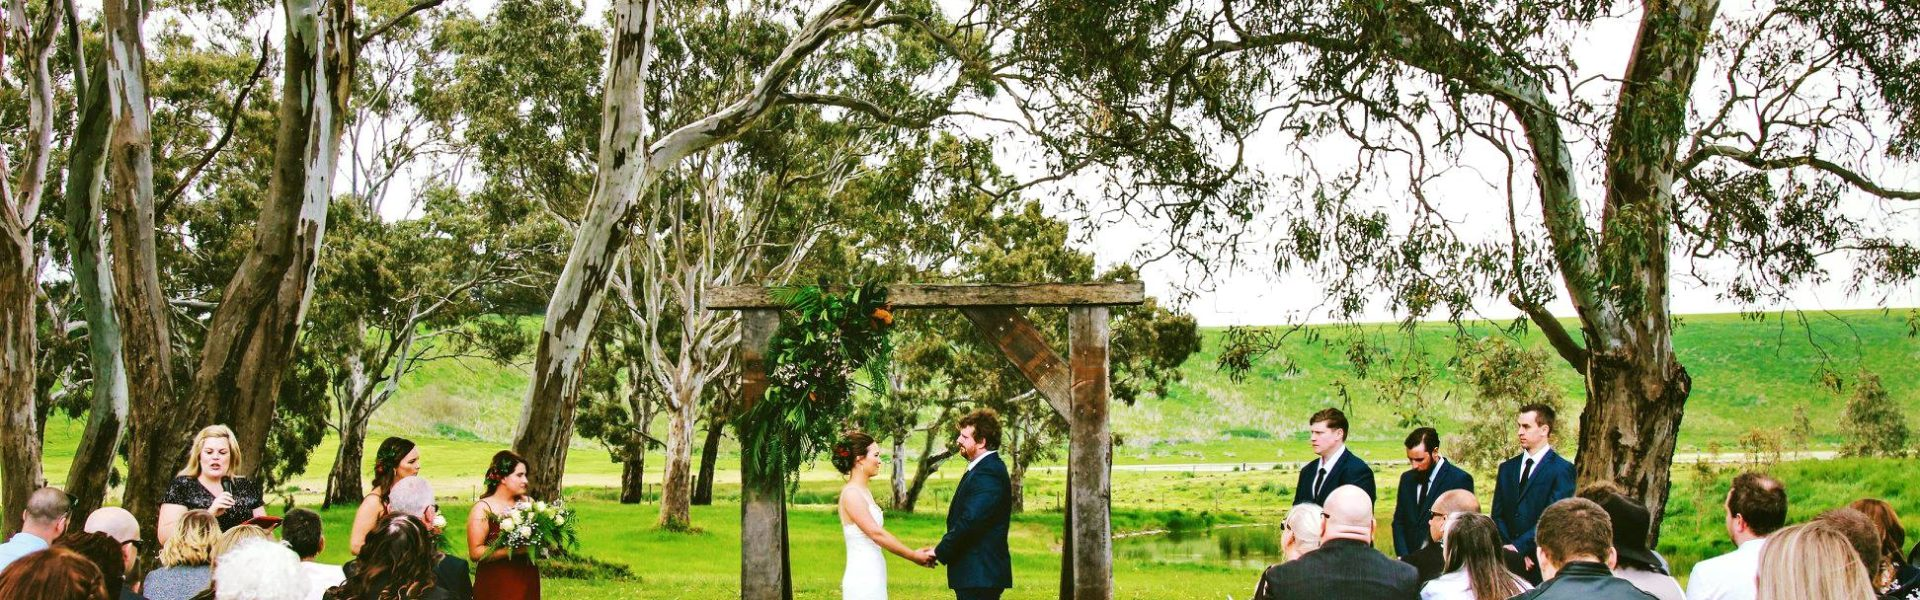 Ceremony wedding furniture hire package geelong mornington ballarat gippsland